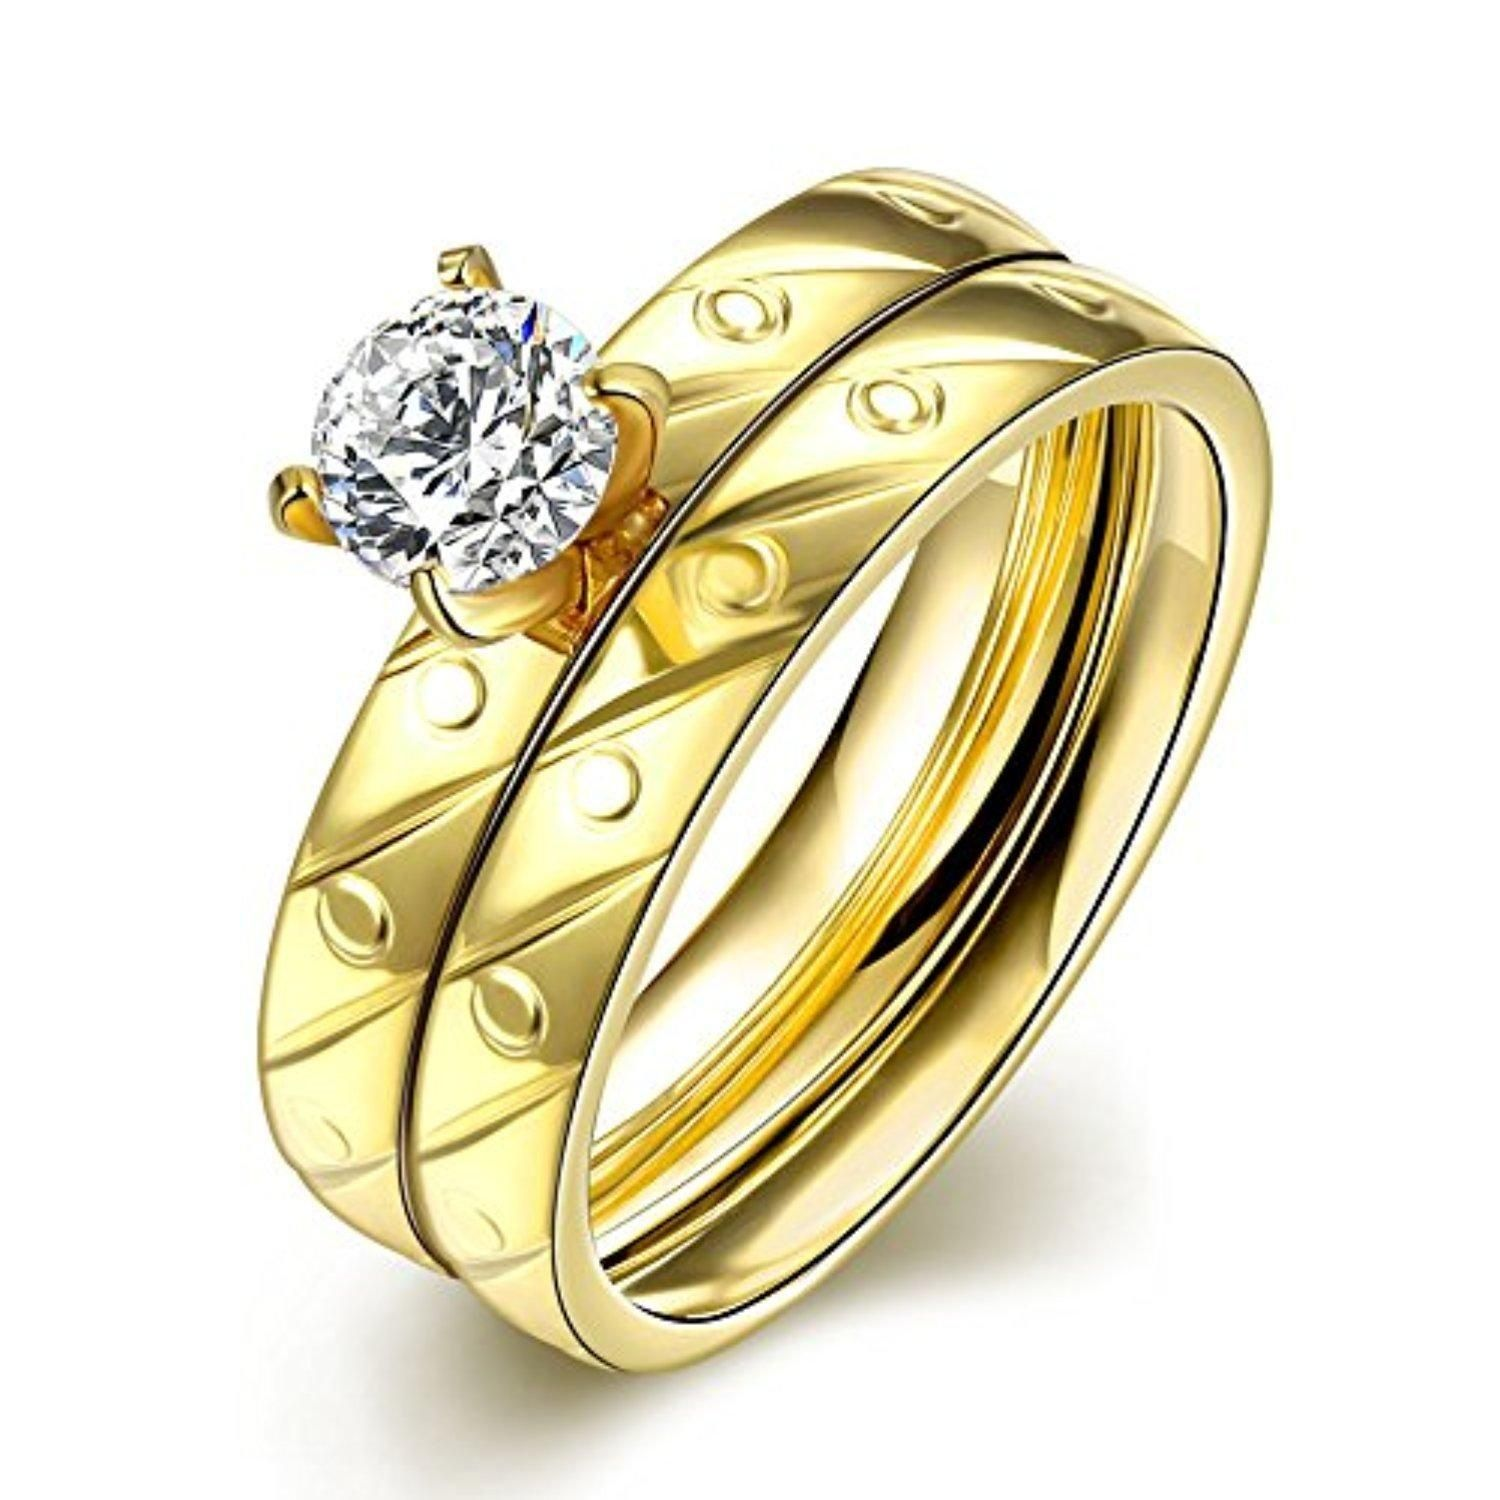 wedding s zircon from custom lot in rose mix gift rings korean item women gold brand jewelry accessories fashion on sizes ring